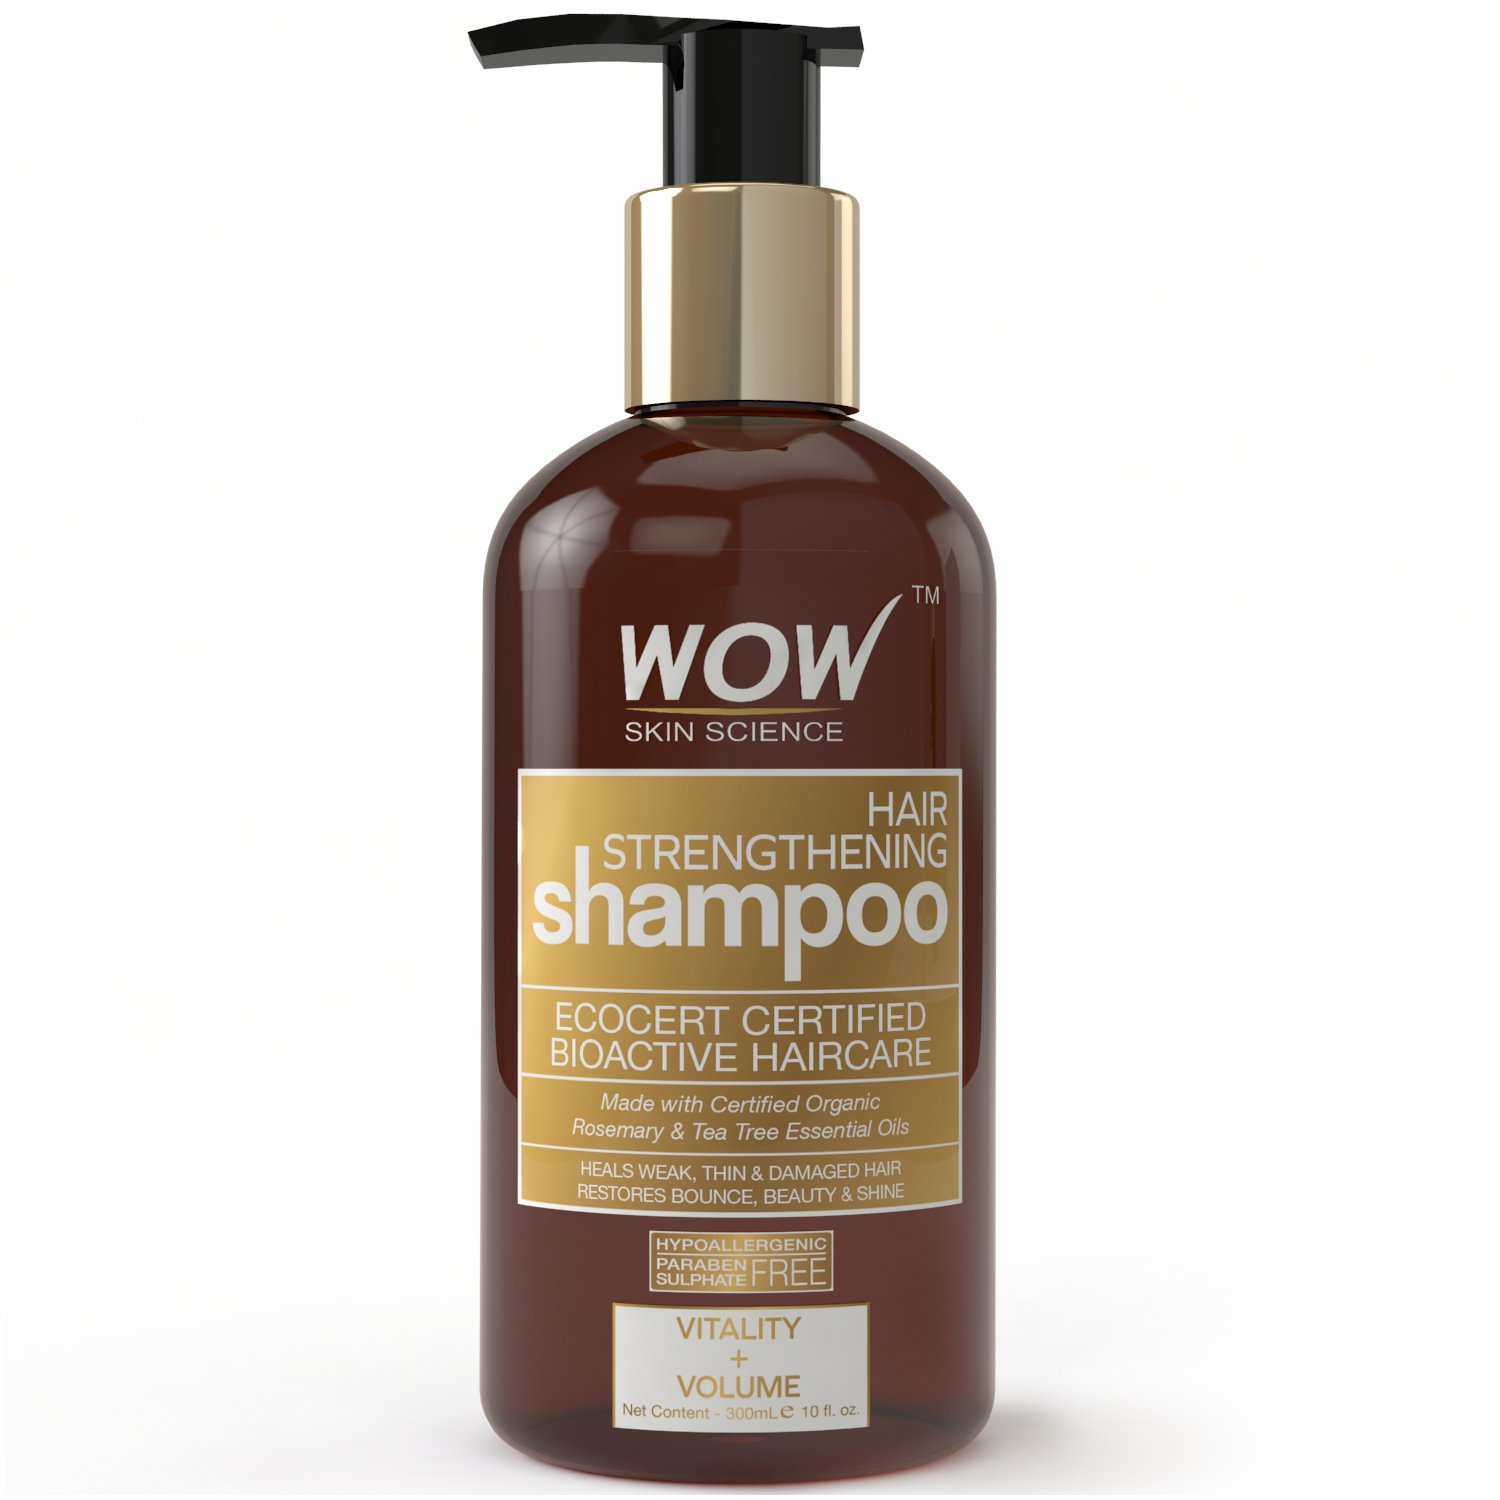 WOW Hair Strengthening No Sulphate & Parabens Shampoo, 300mL product image